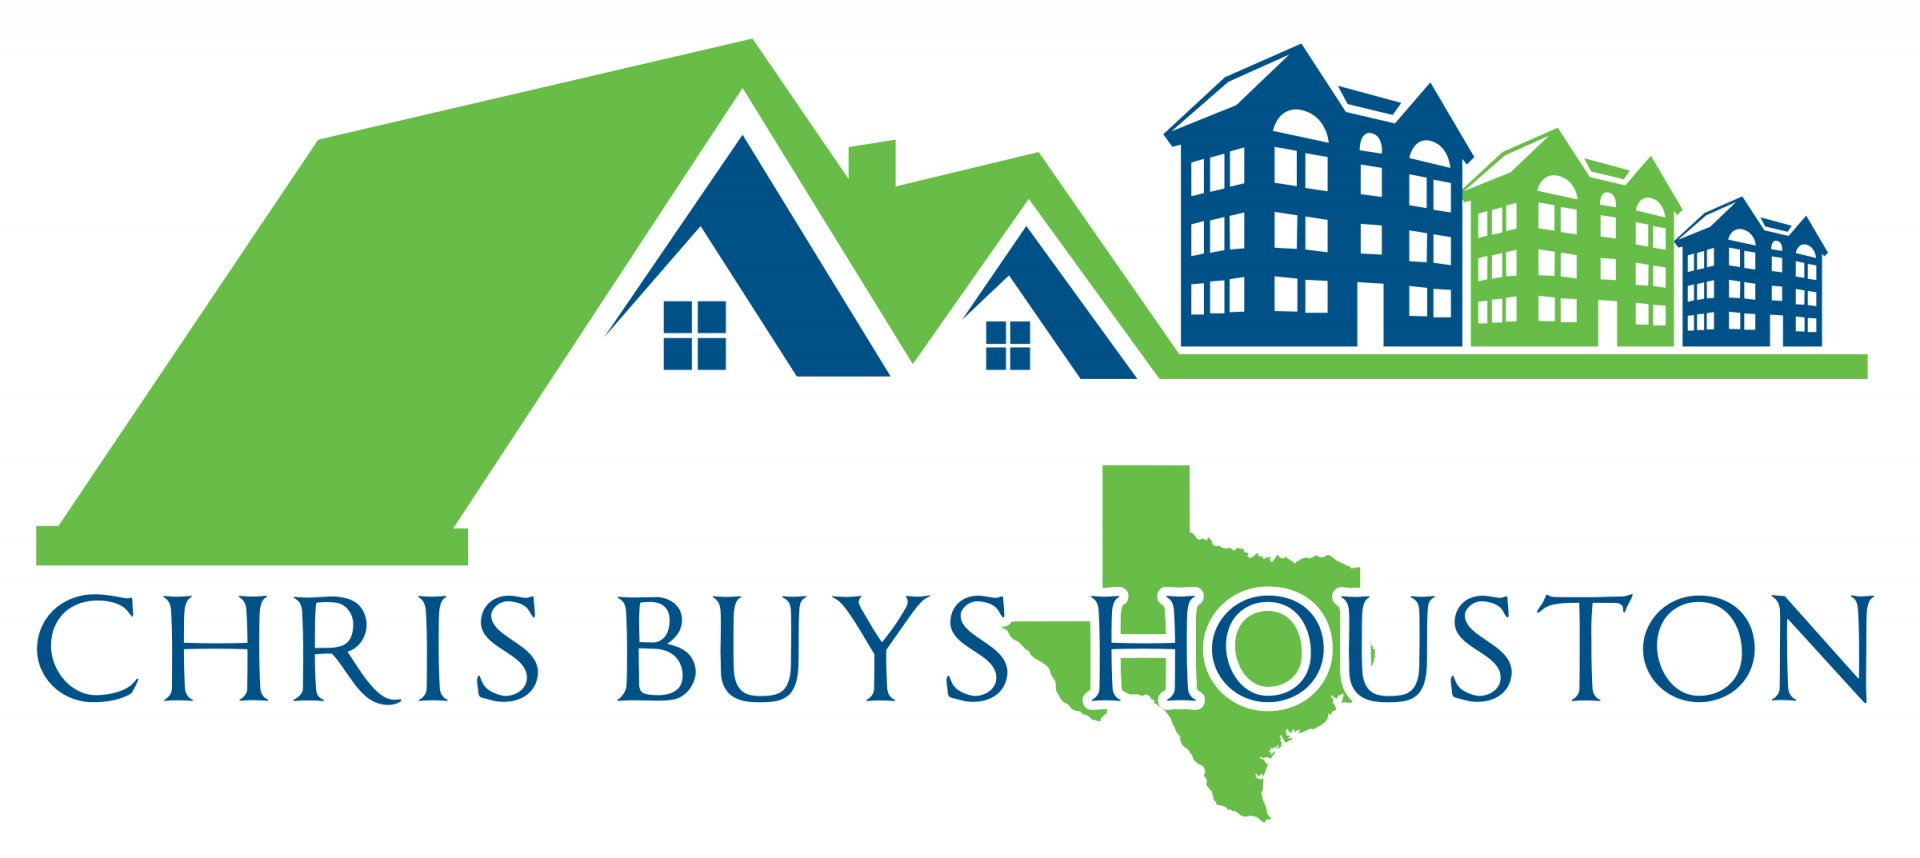 Chris Buys Houses | We Buy Houses Houston | Sell My House Fast Houston logo